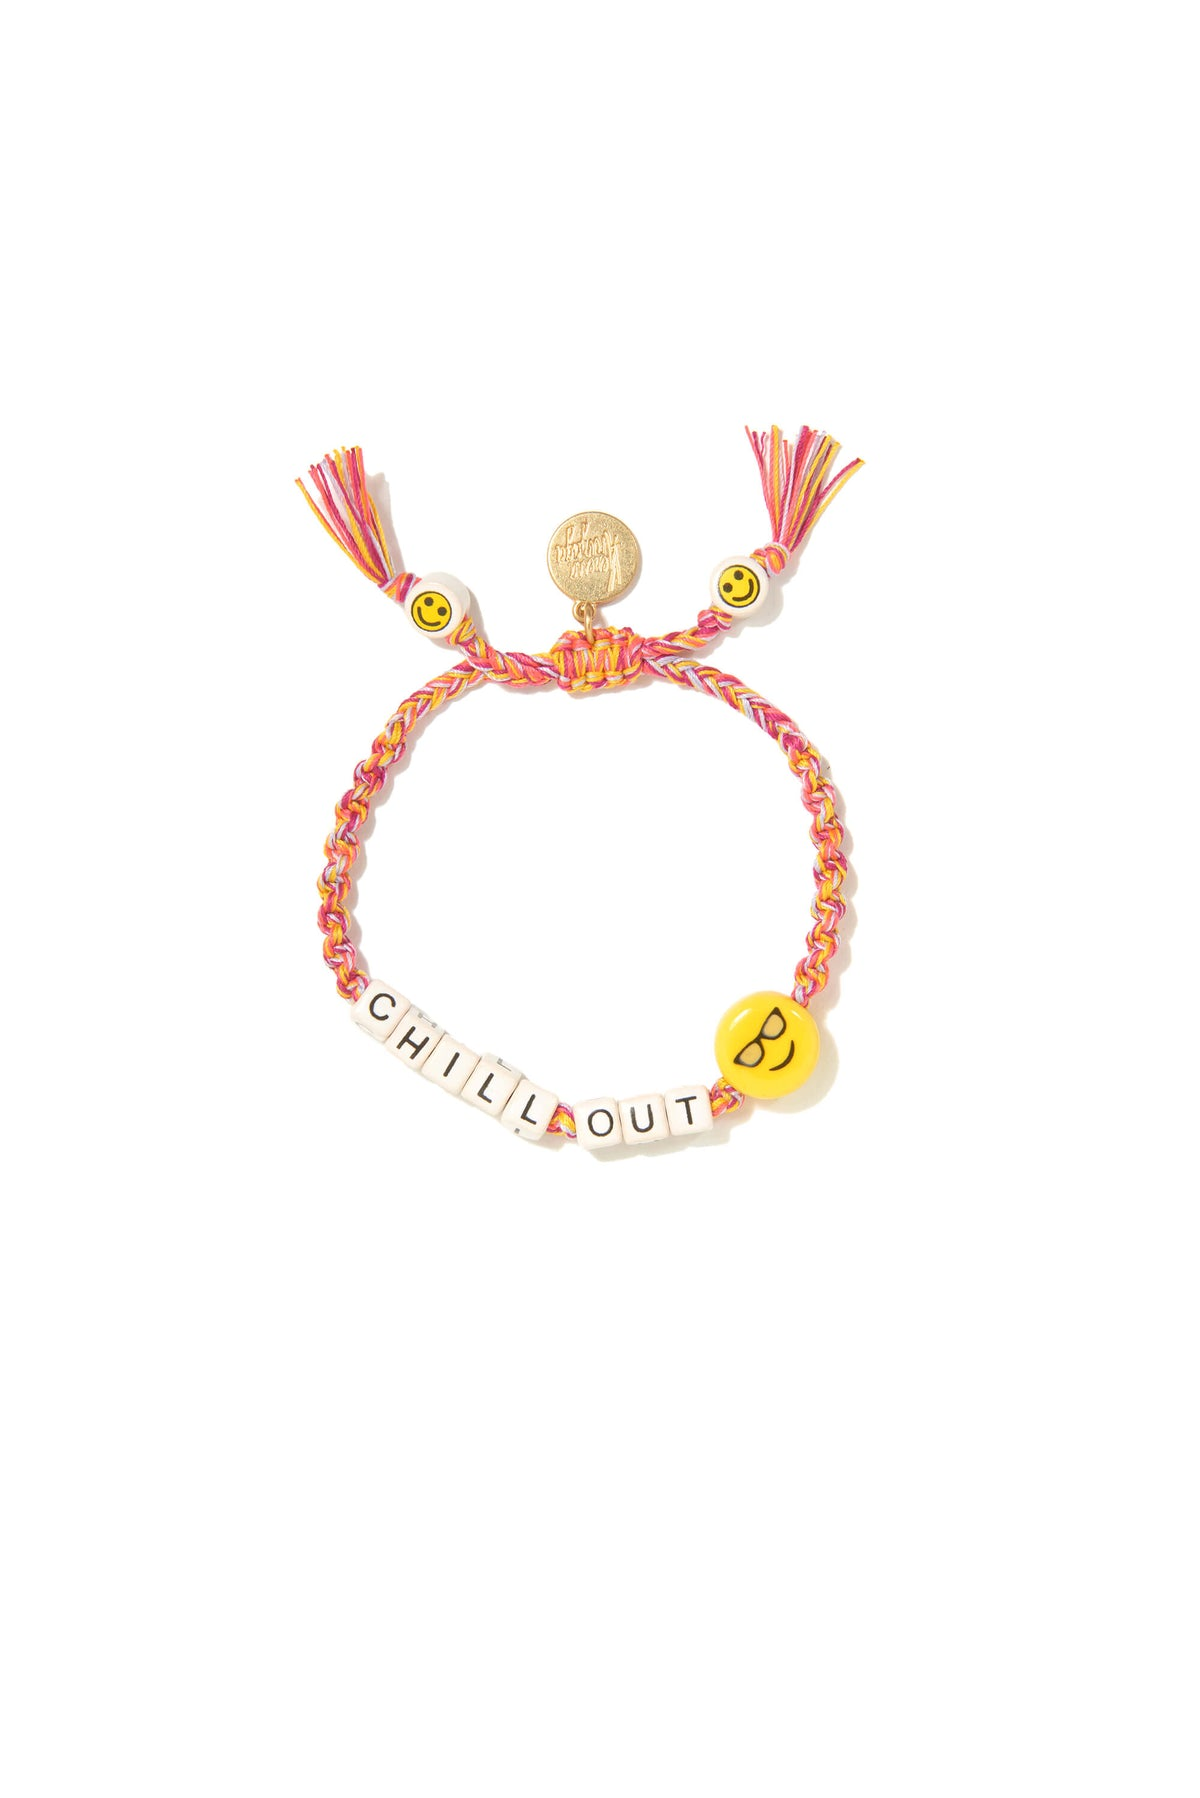 VA Chill out bracelet in orange with gold